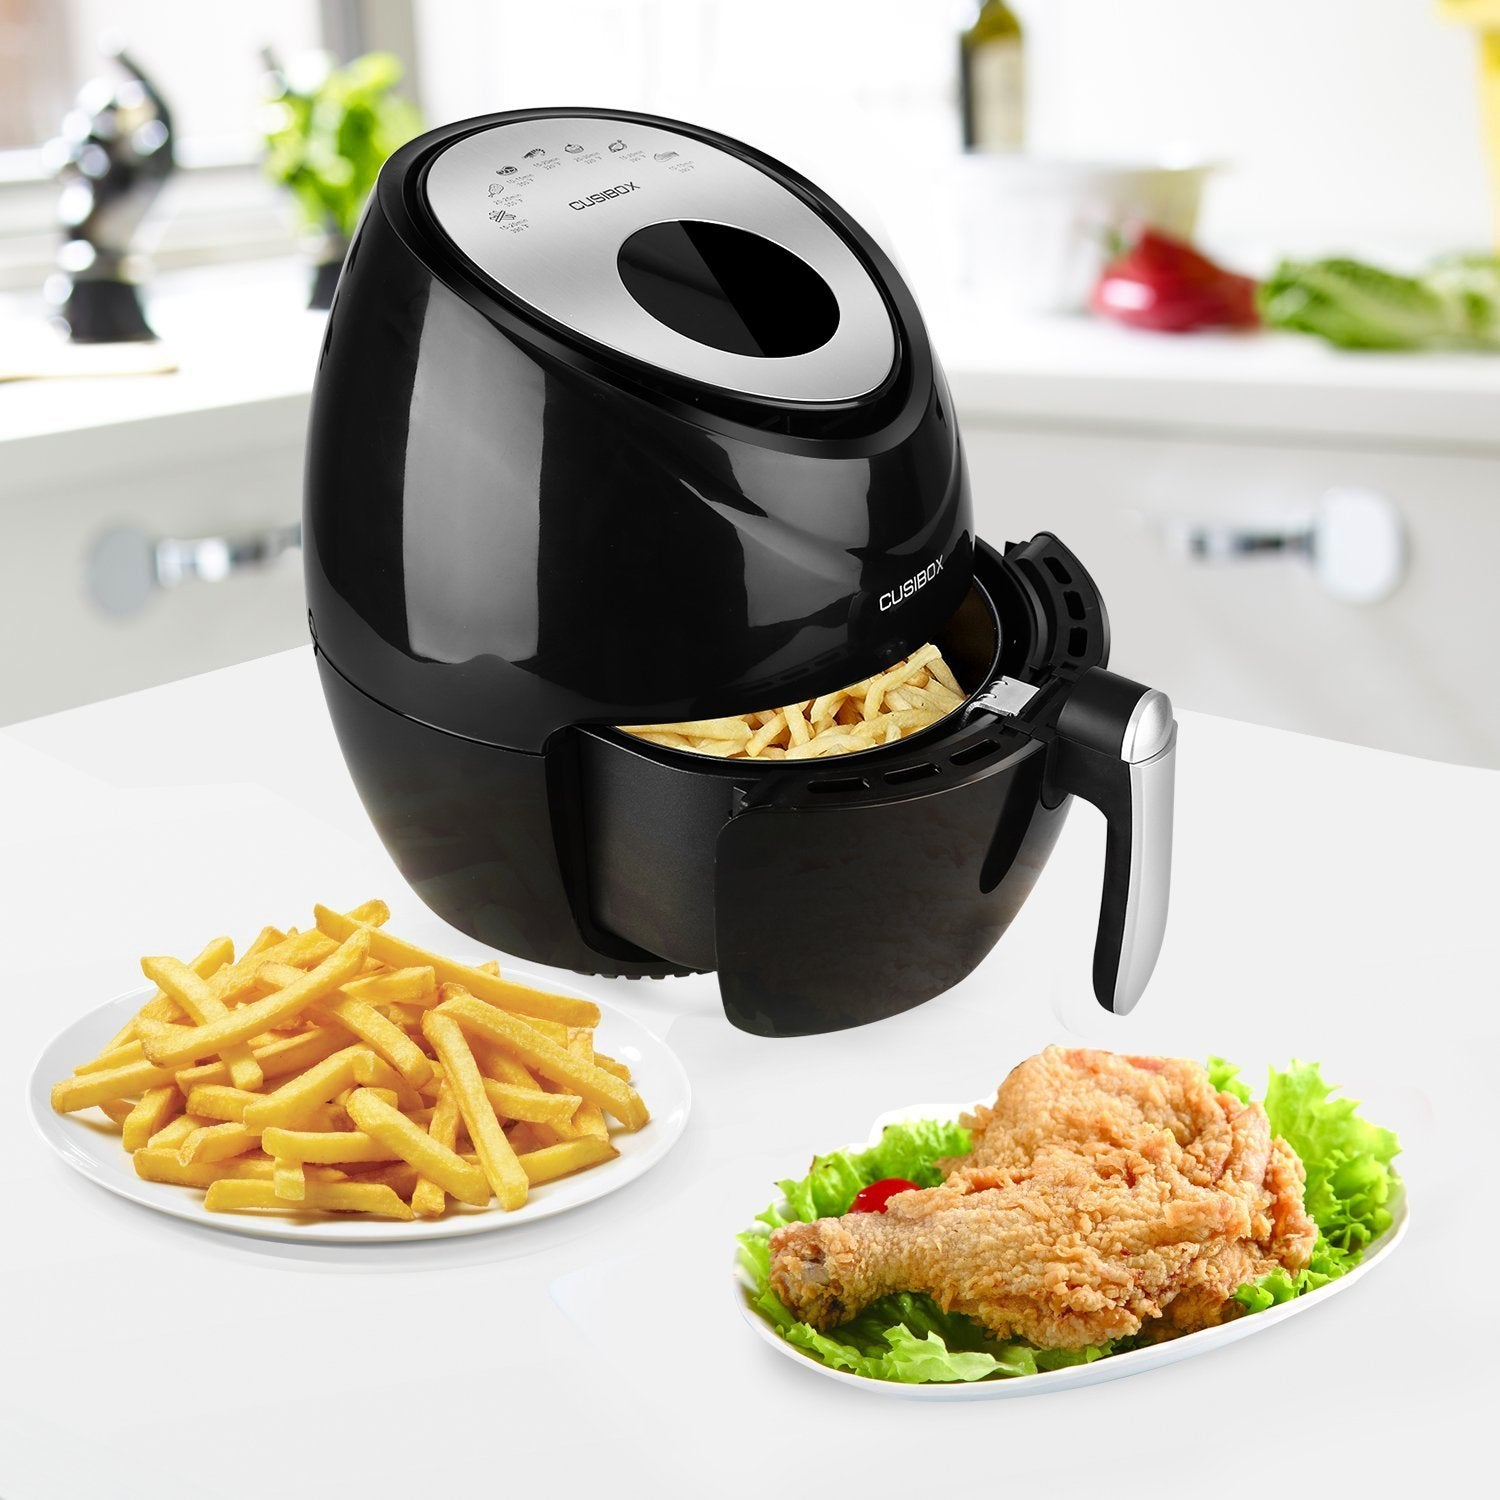 Digital Touch-Activated Air Fryer with LED Display and 7-in-1 Pre-programmed